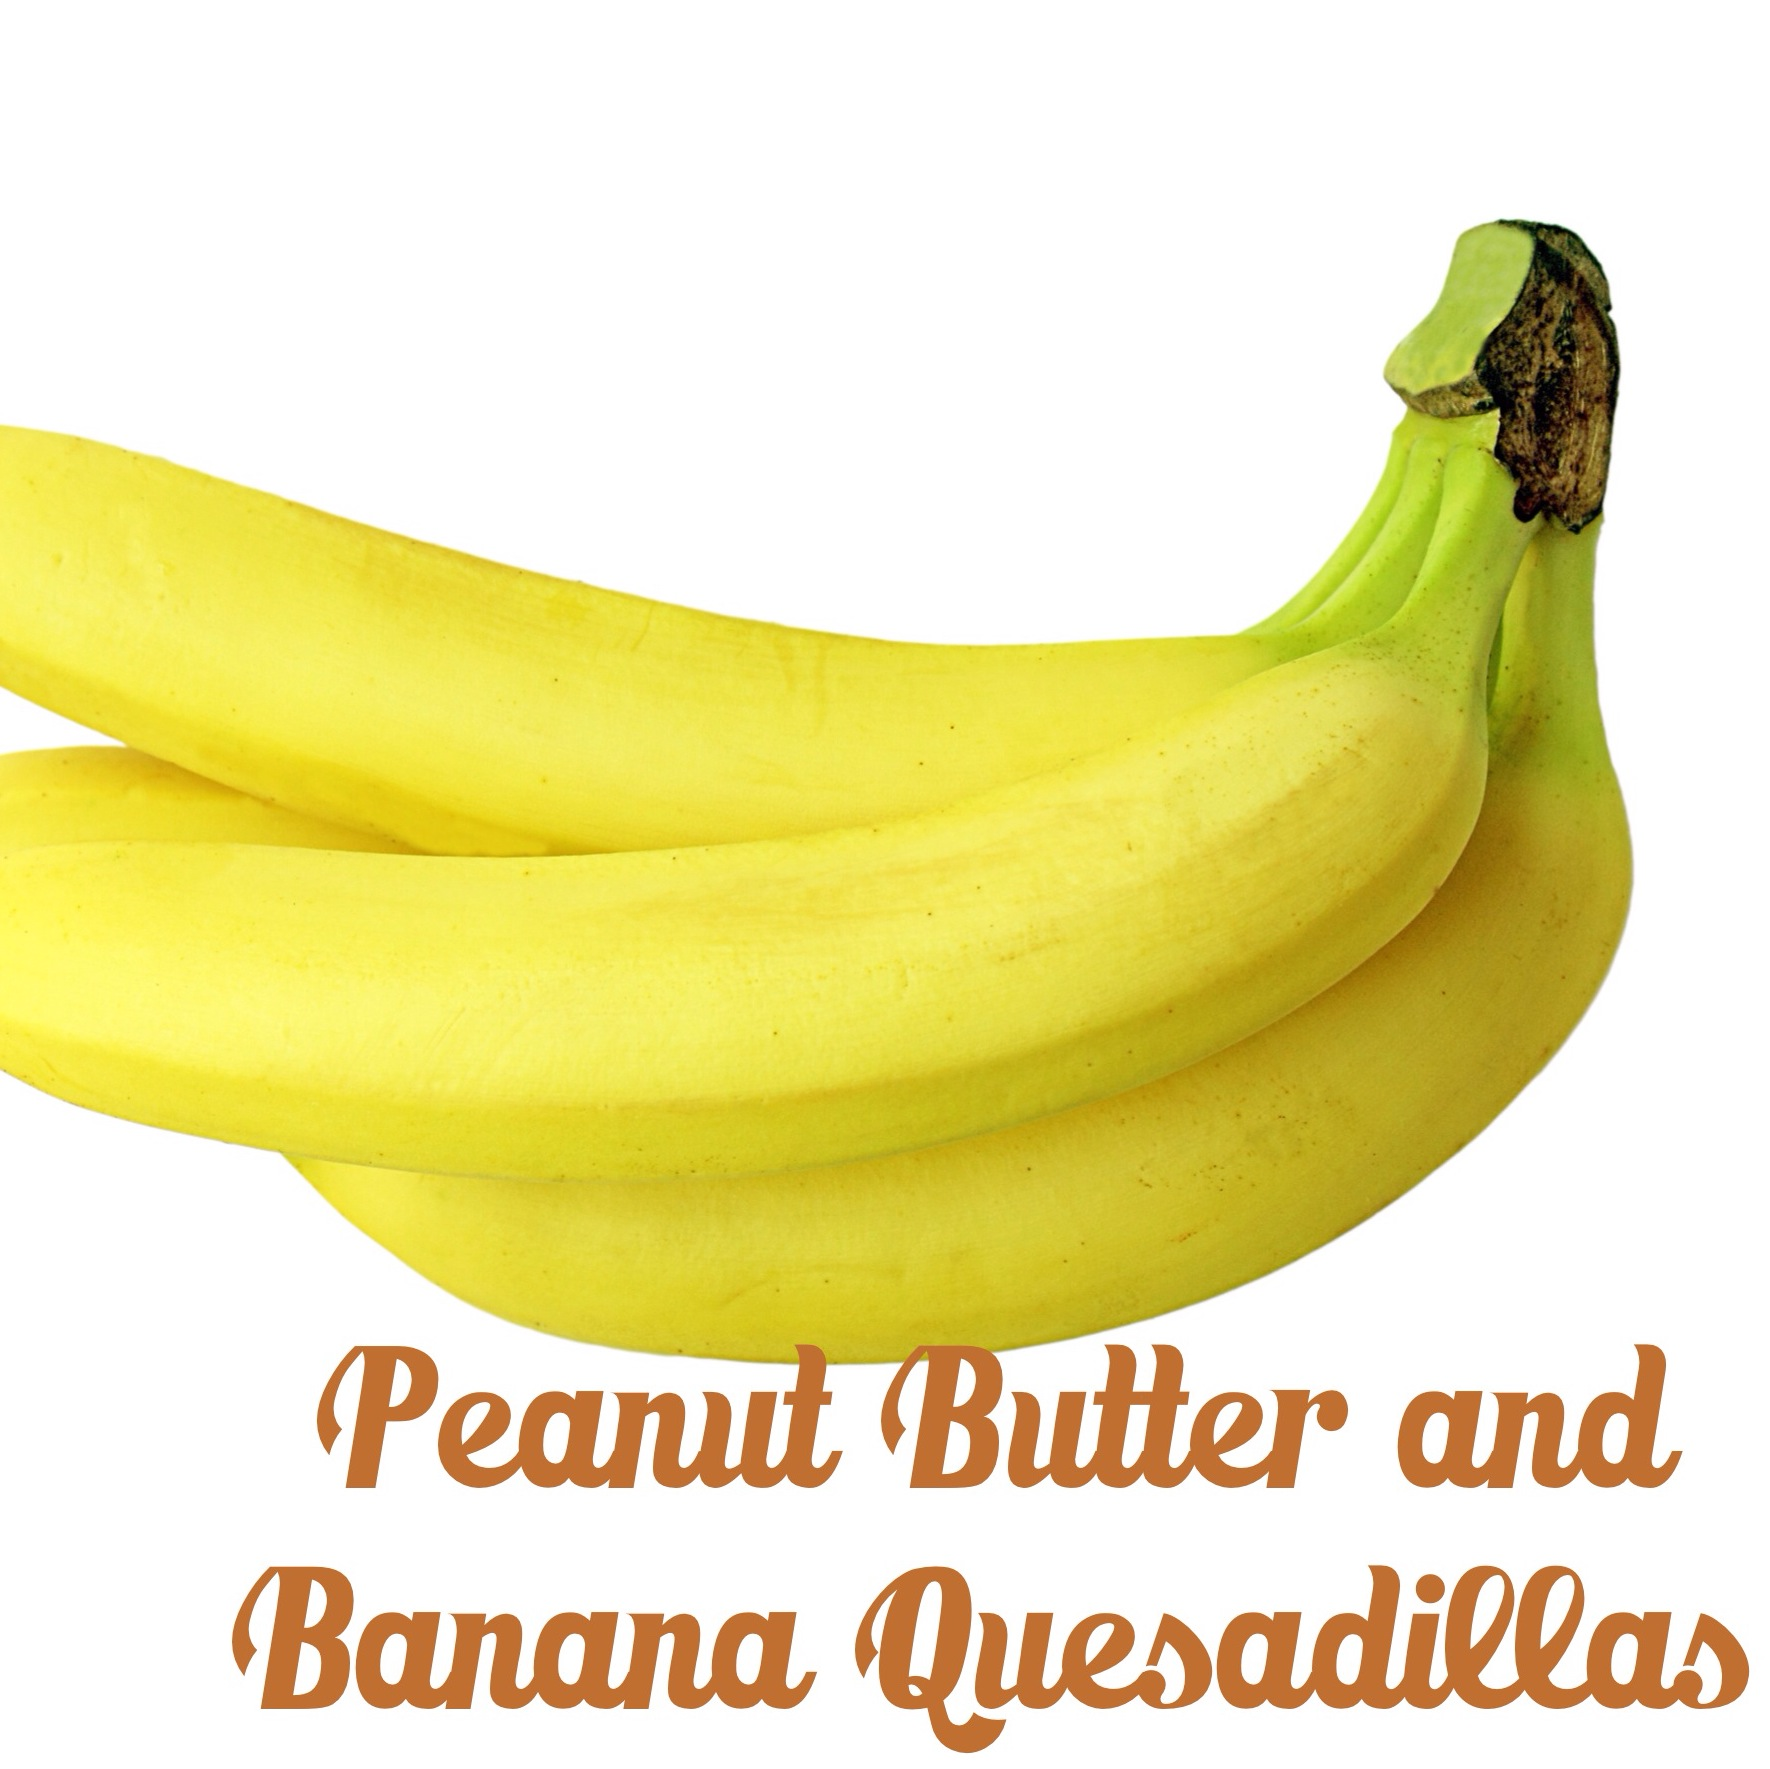 Monkey Quesadillas aka Peanut Butter and Banana Quesadillas | The ...